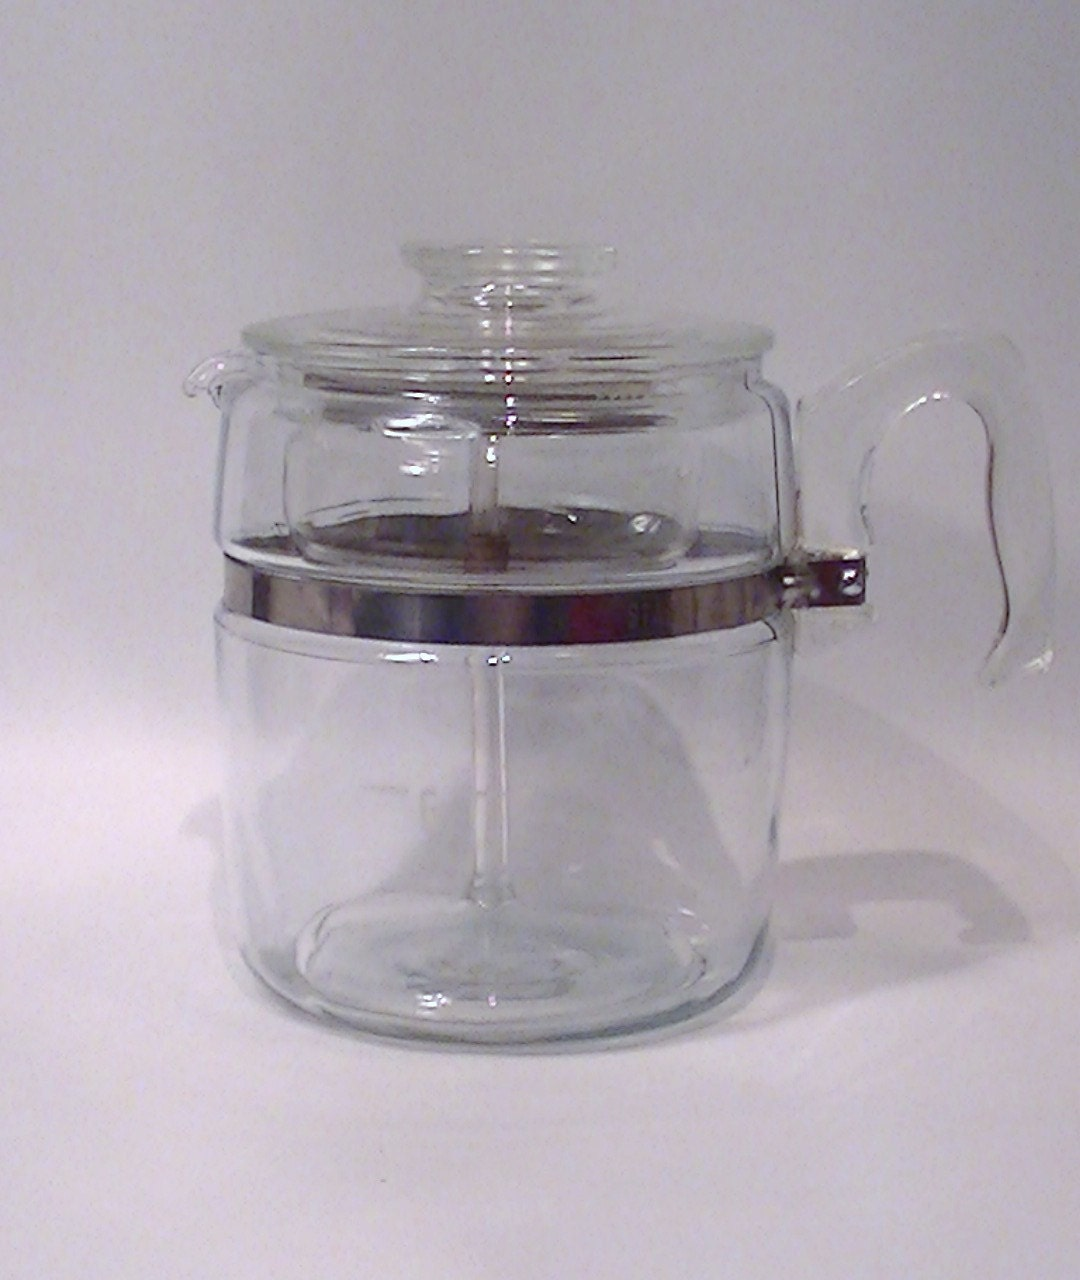 Pyrex Coffee Maker How To Use : Vintage Pyrex Flameware 9 Cup Coffee Pot by Lifeinmommatone